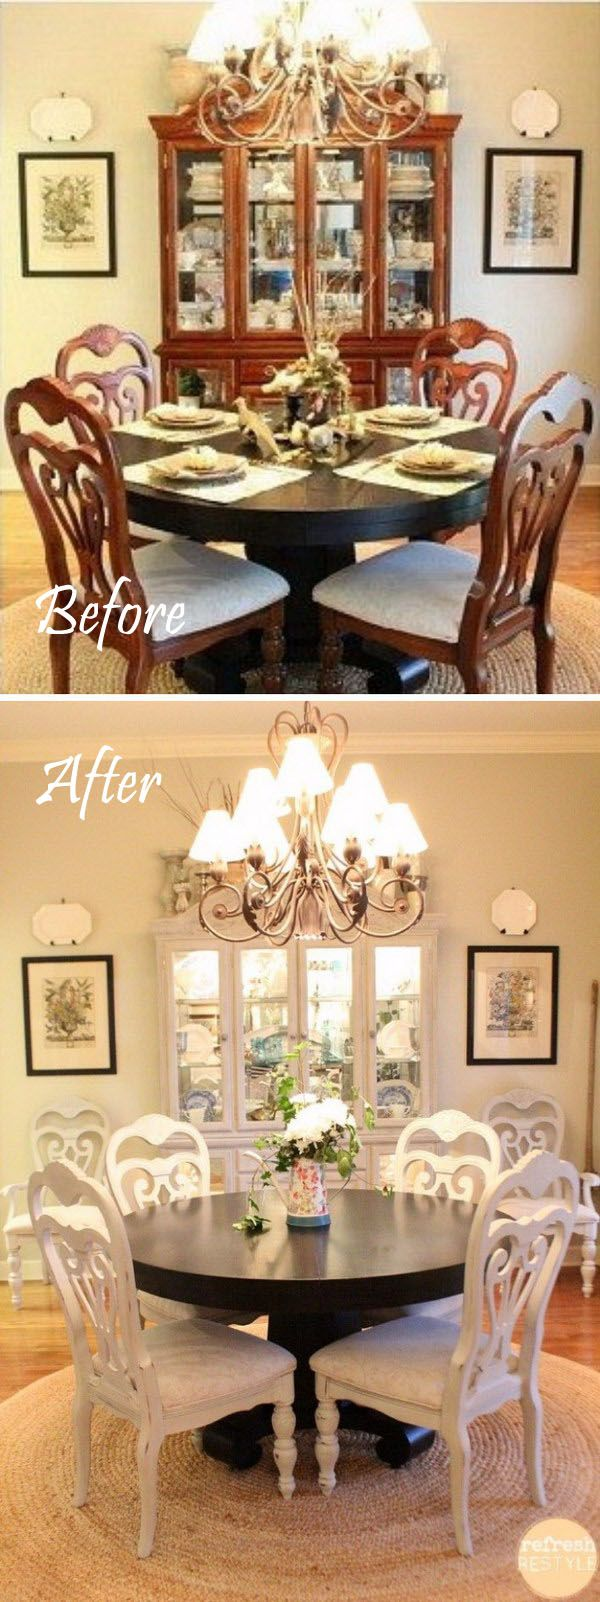 Easy And Budget Friendly Dining Room Makeover Ideas